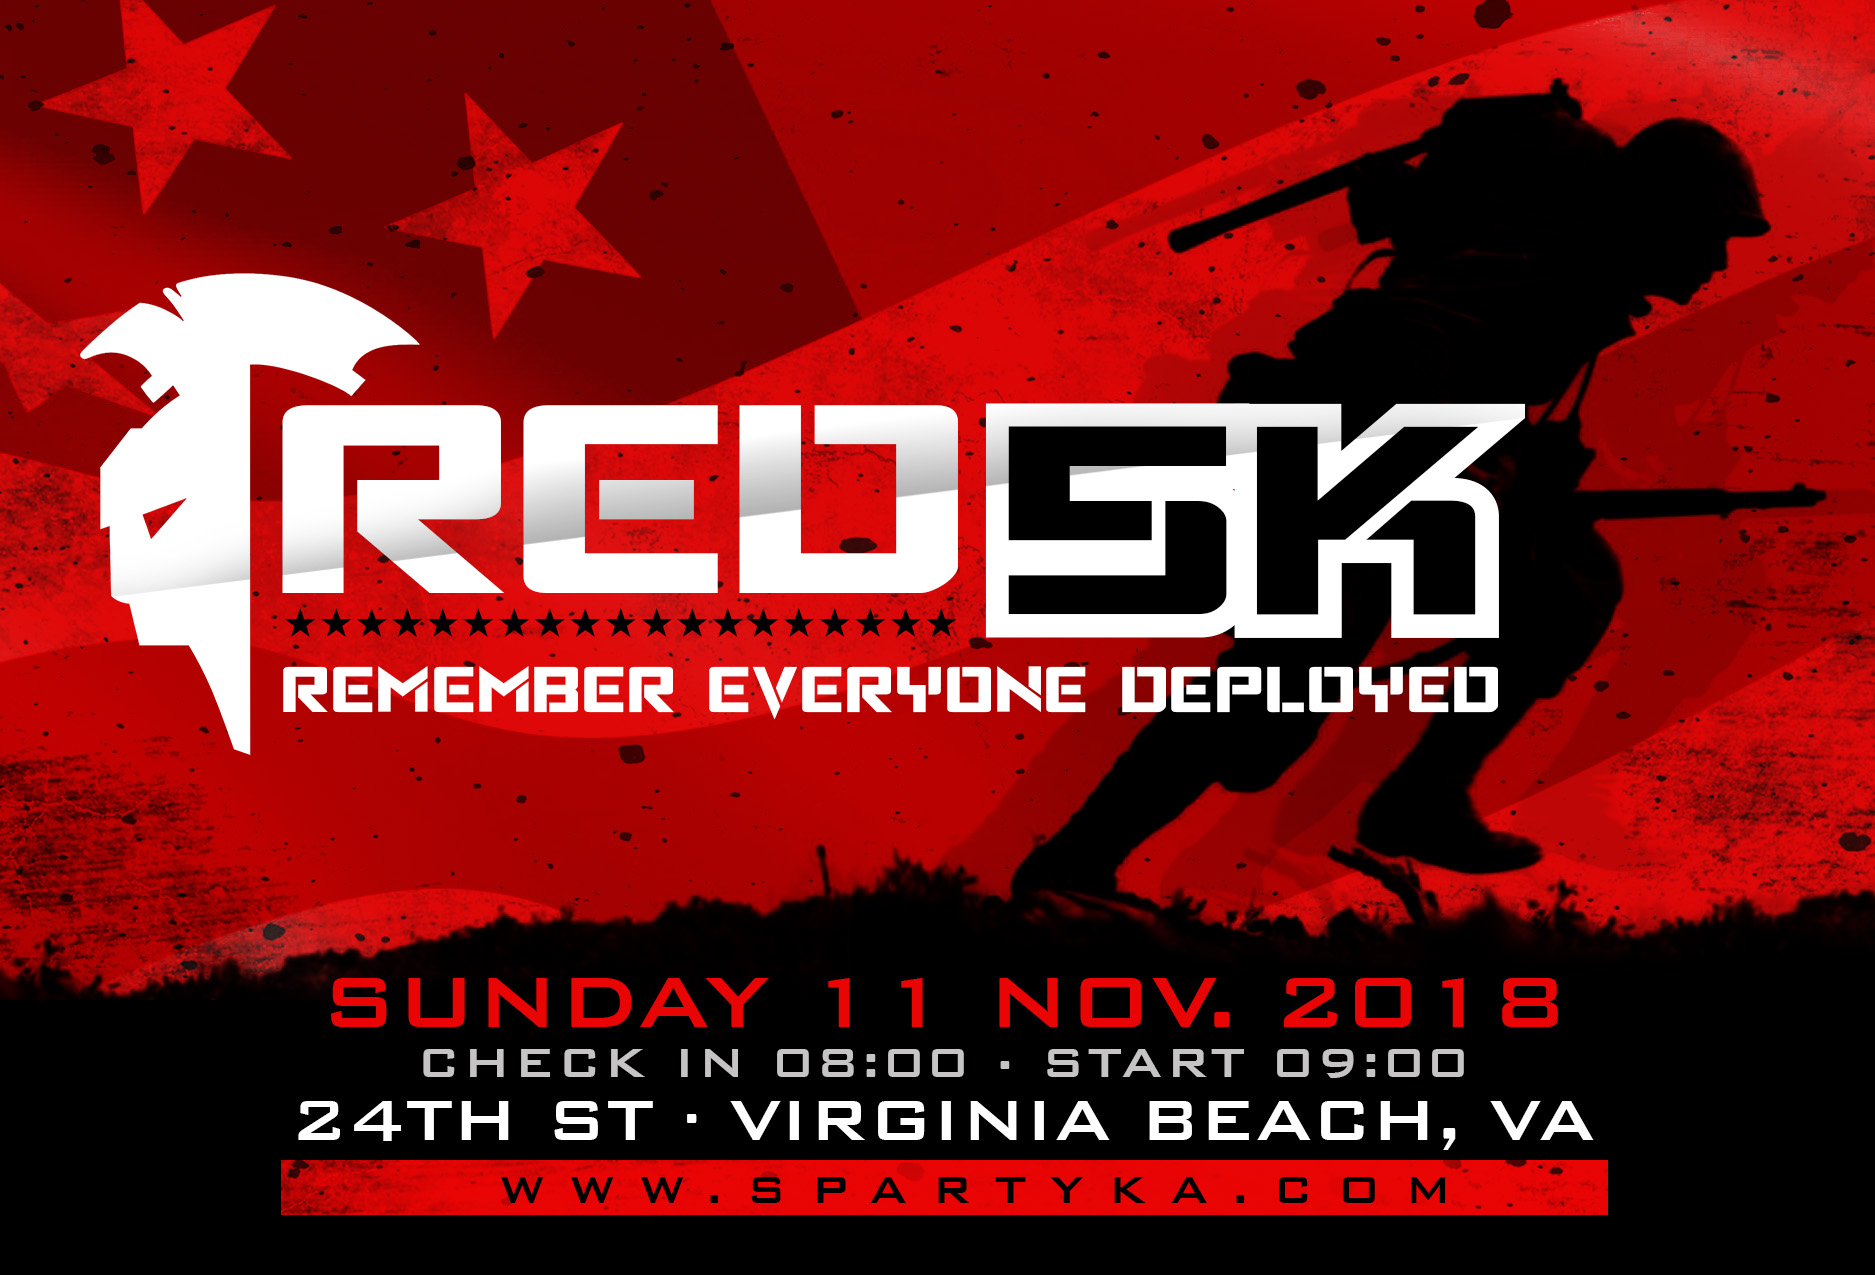 RED 5k - Virginia Beach